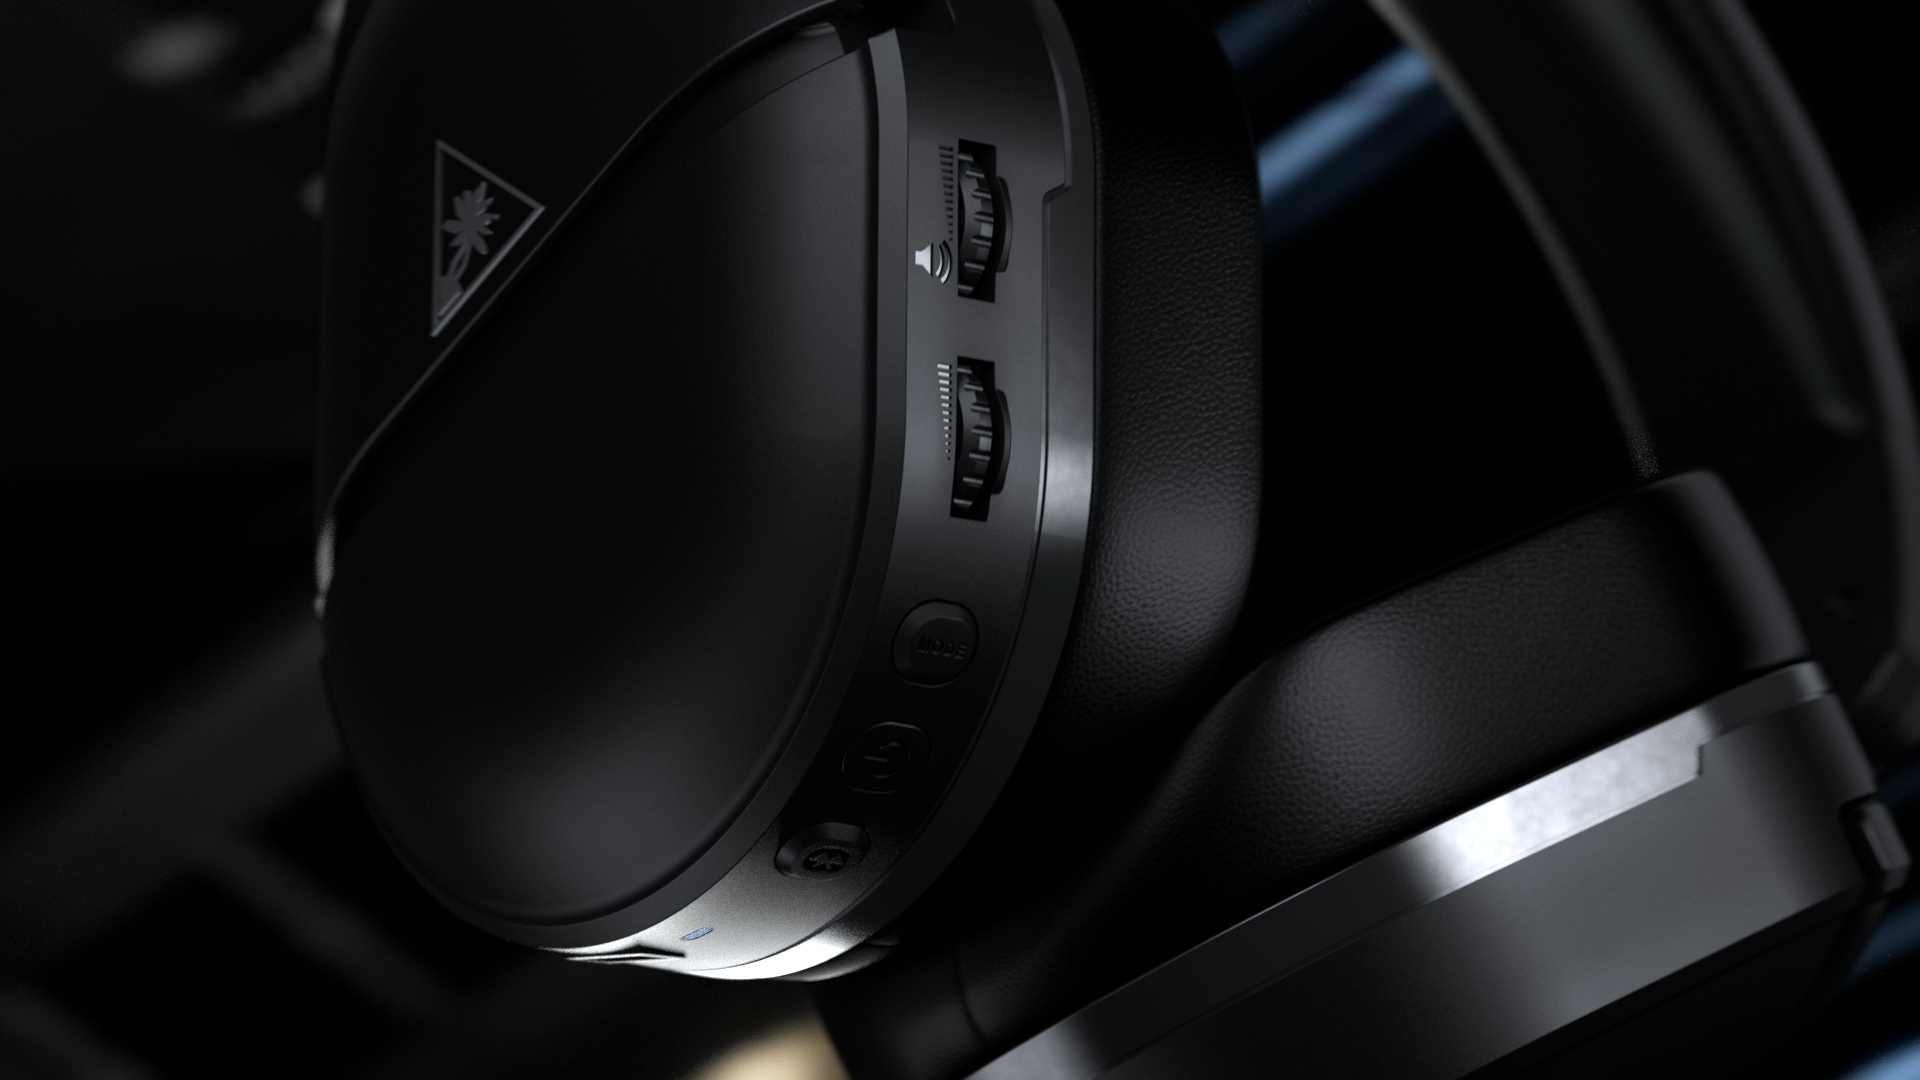 How To Set Up The Turtle Beach Stealth 600 and Stealth 700 Gen 2 for Xbox Series X and PlayStation 5